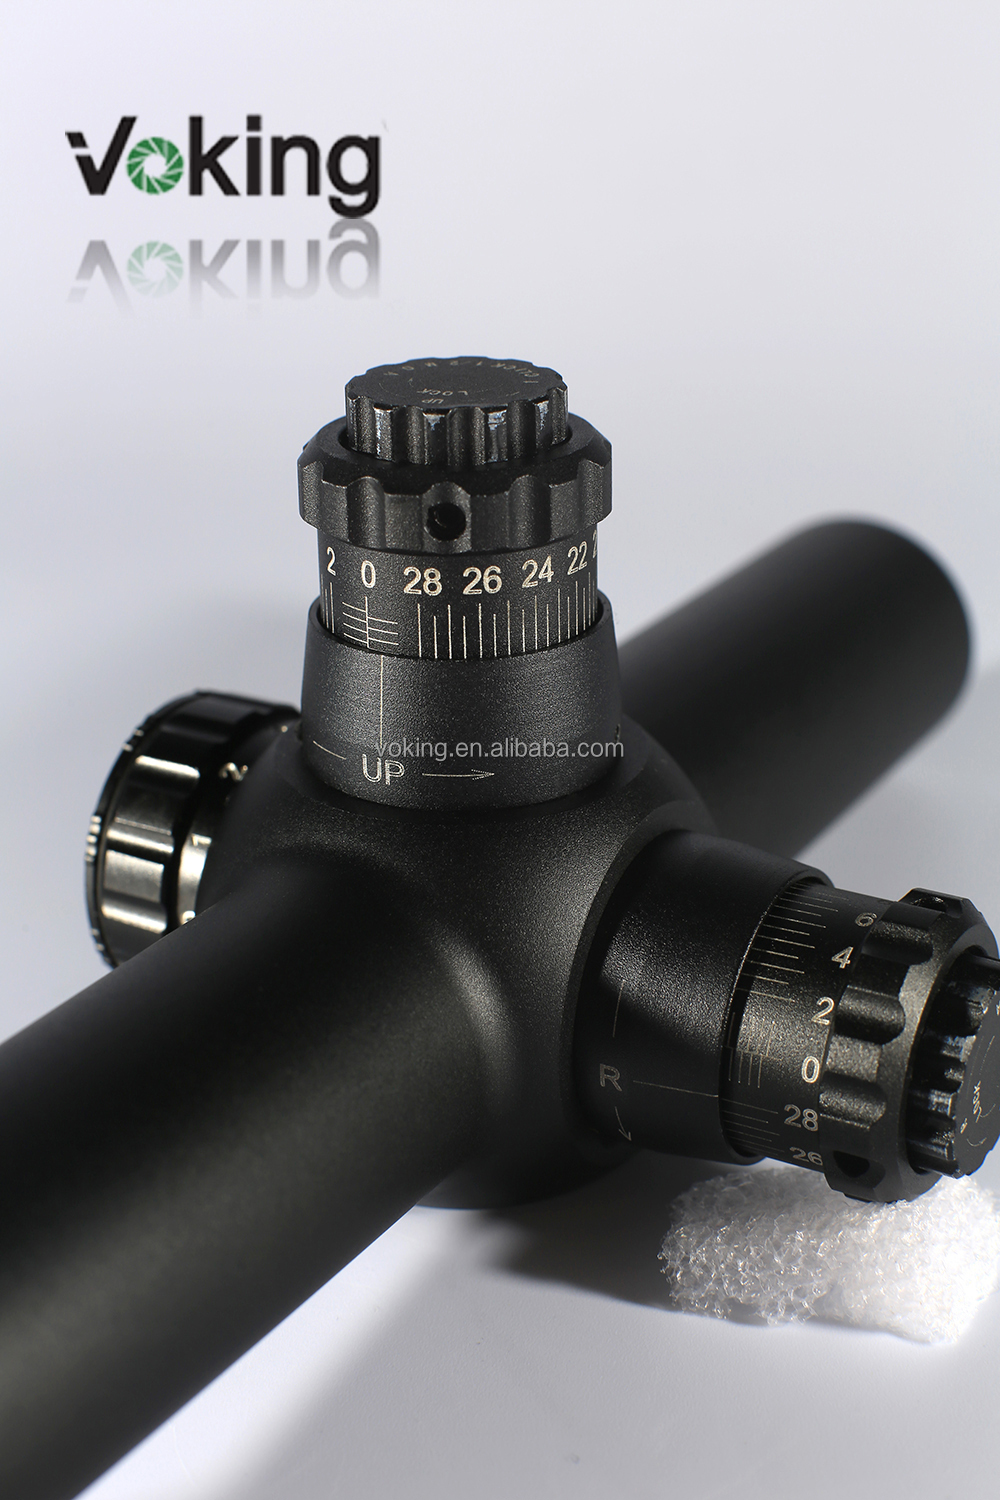 Voking 1-6X24IR Tactical night vision Riflescope